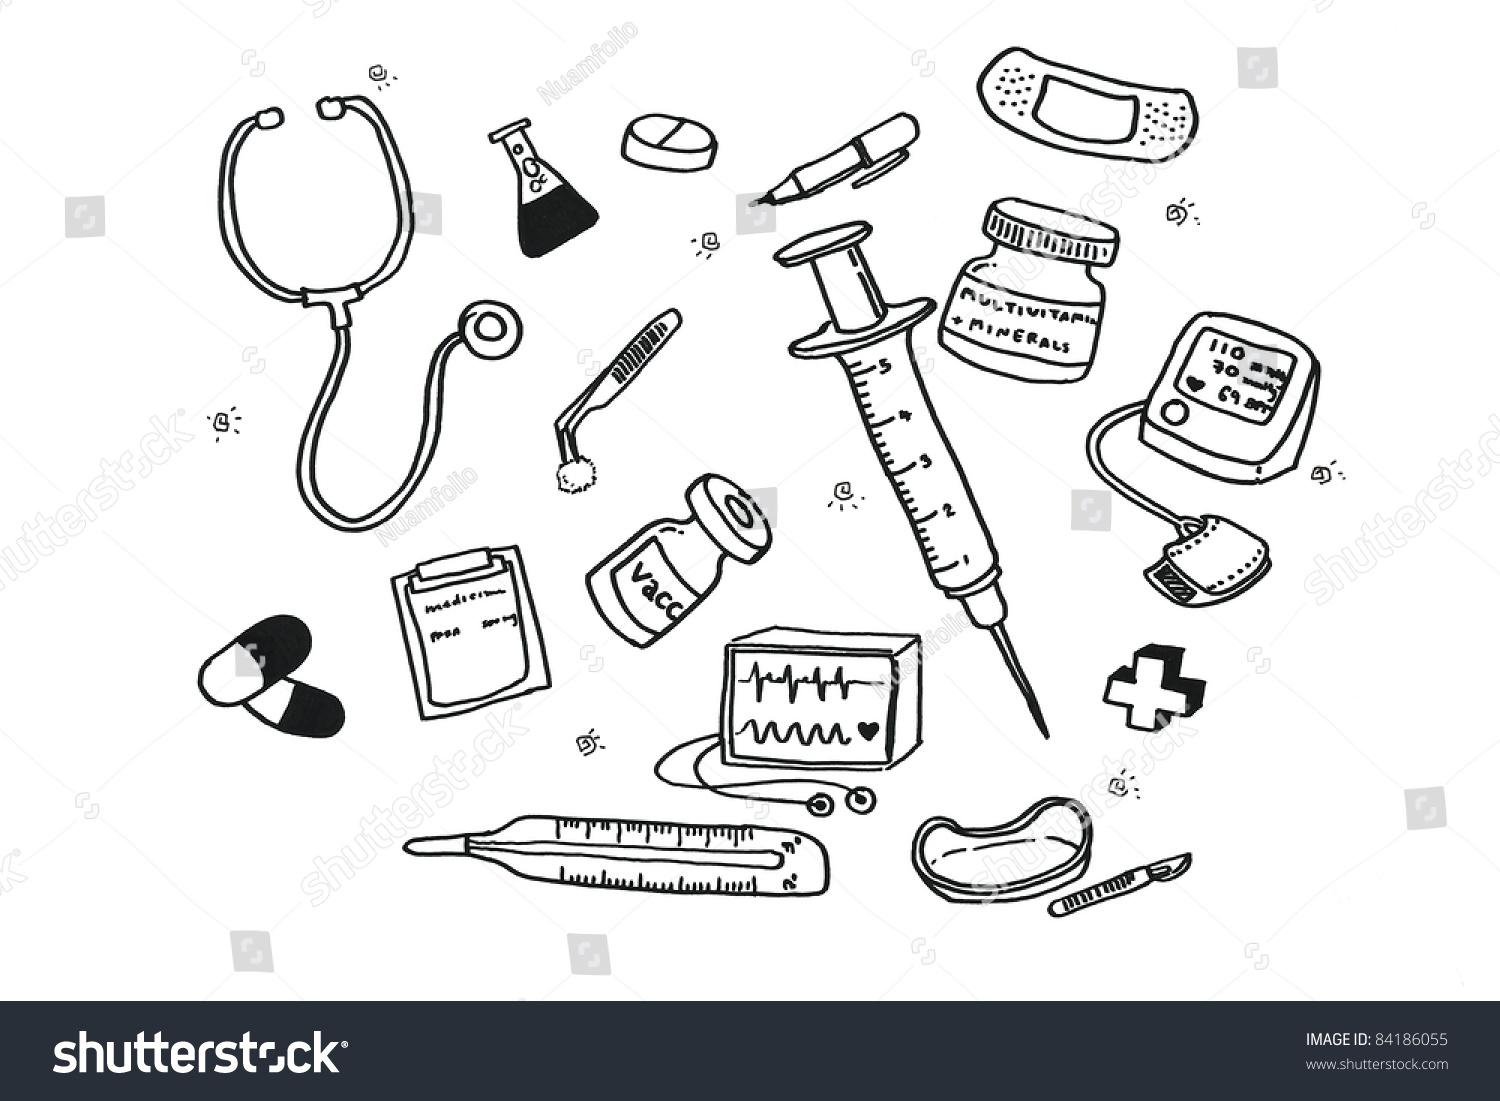 Freehand draw doodle icon doctor tools for healthcare and medical concept